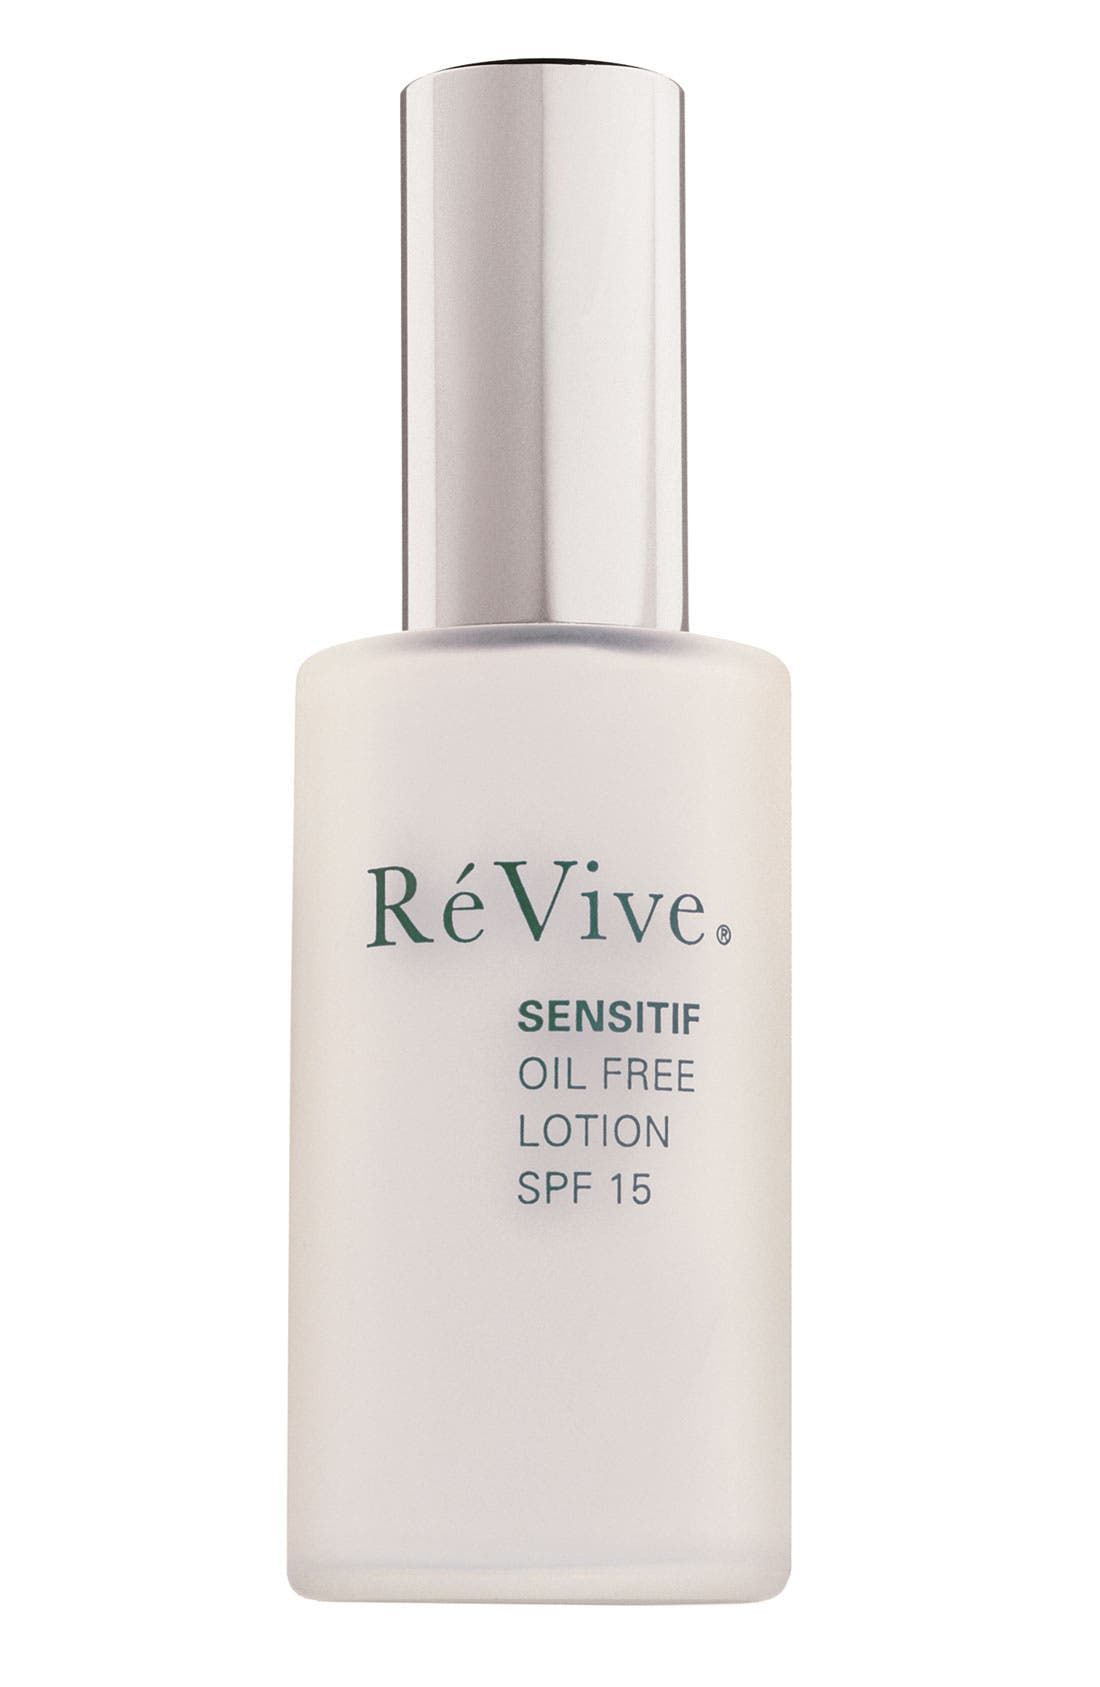 RéVive® Sensitif Oil-Free Lotion SPF 15